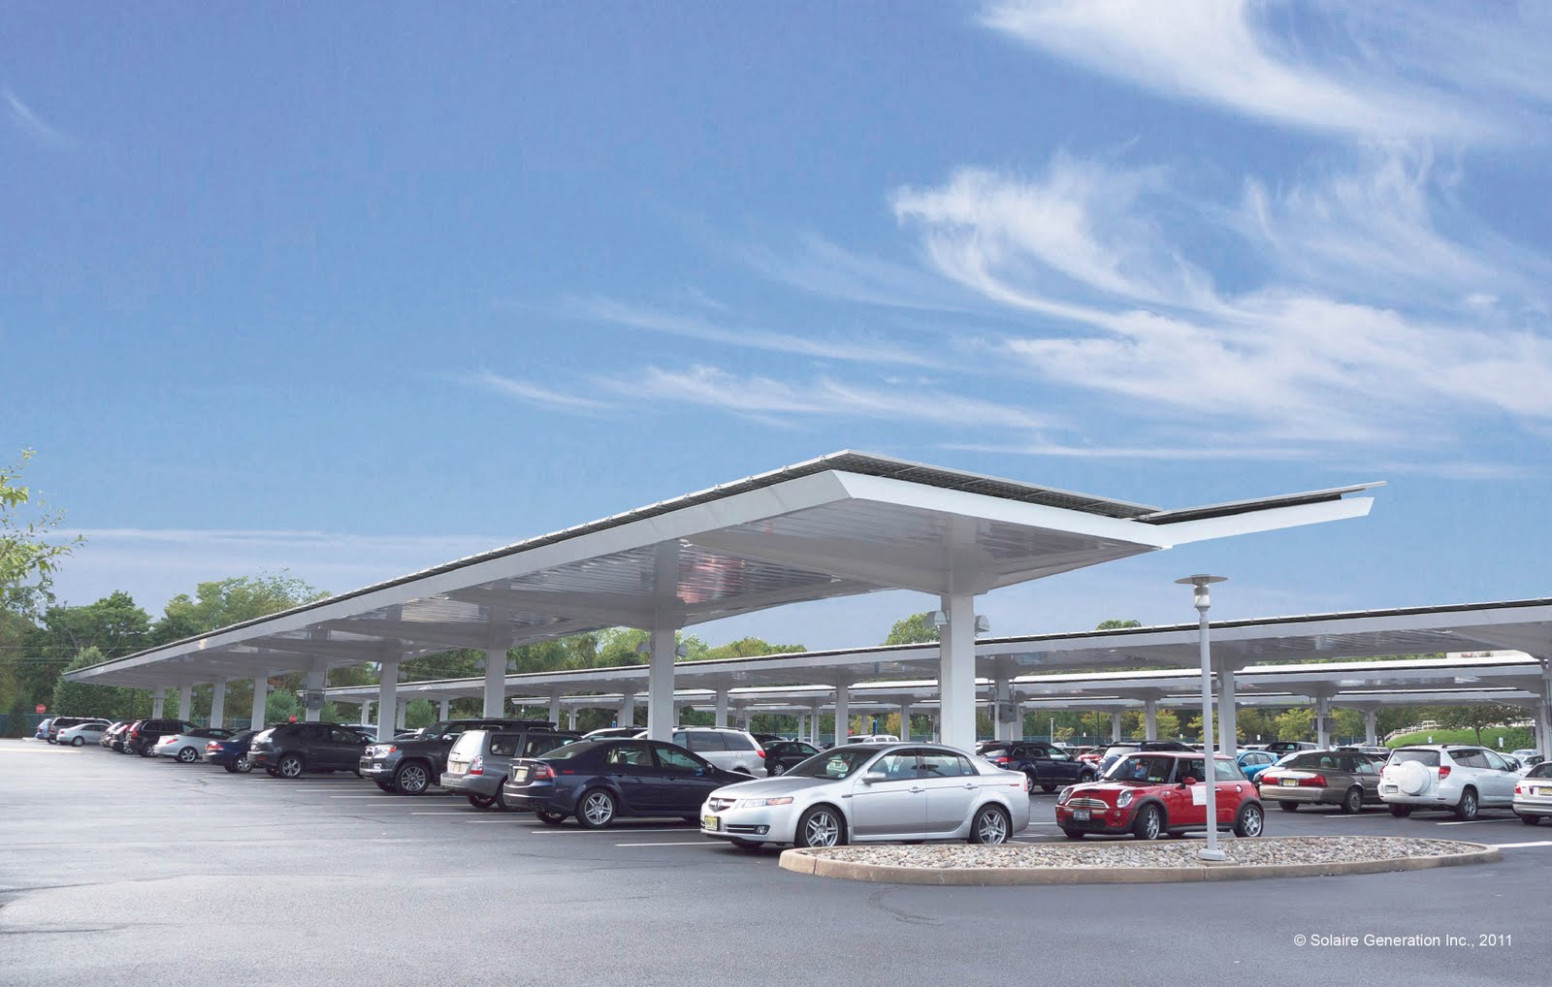 The Green Skeptic: Solaire's Parking Canopies, A Cool ..